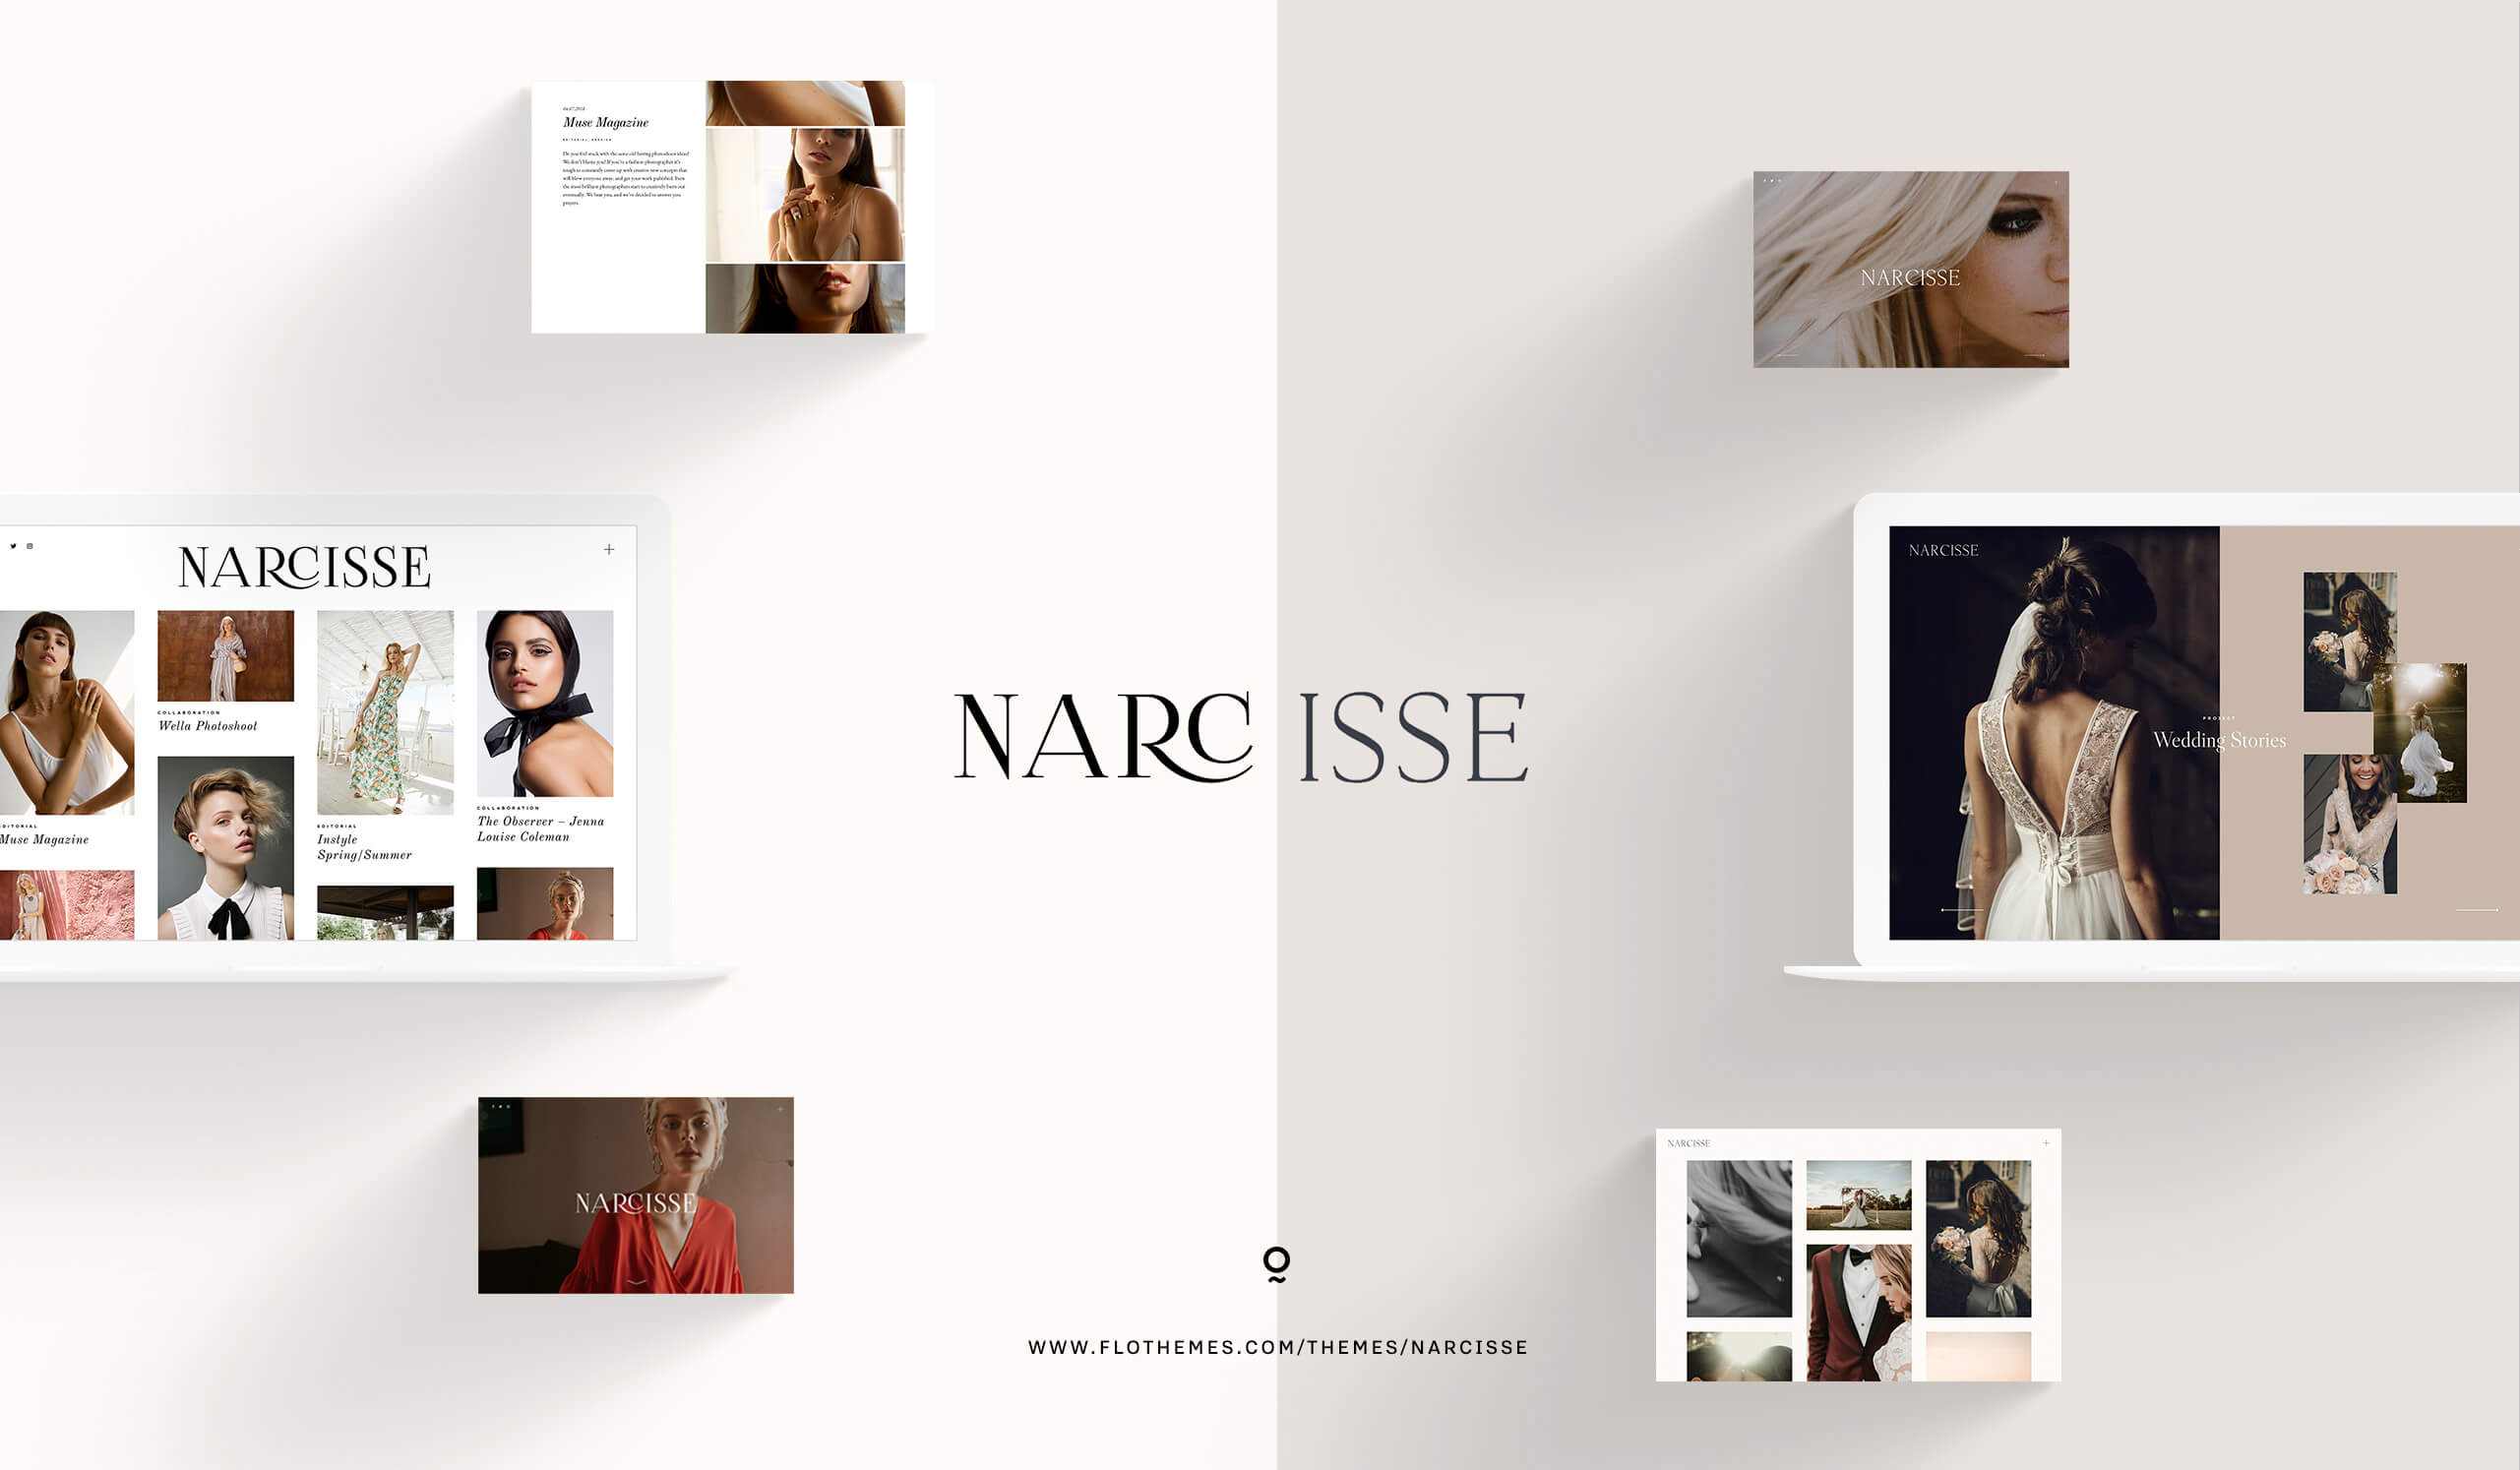 New theme: Narcisse website design for photographers, wedding, fashion, portrait, editorial, fine art, lifestyle, 2 stylekits